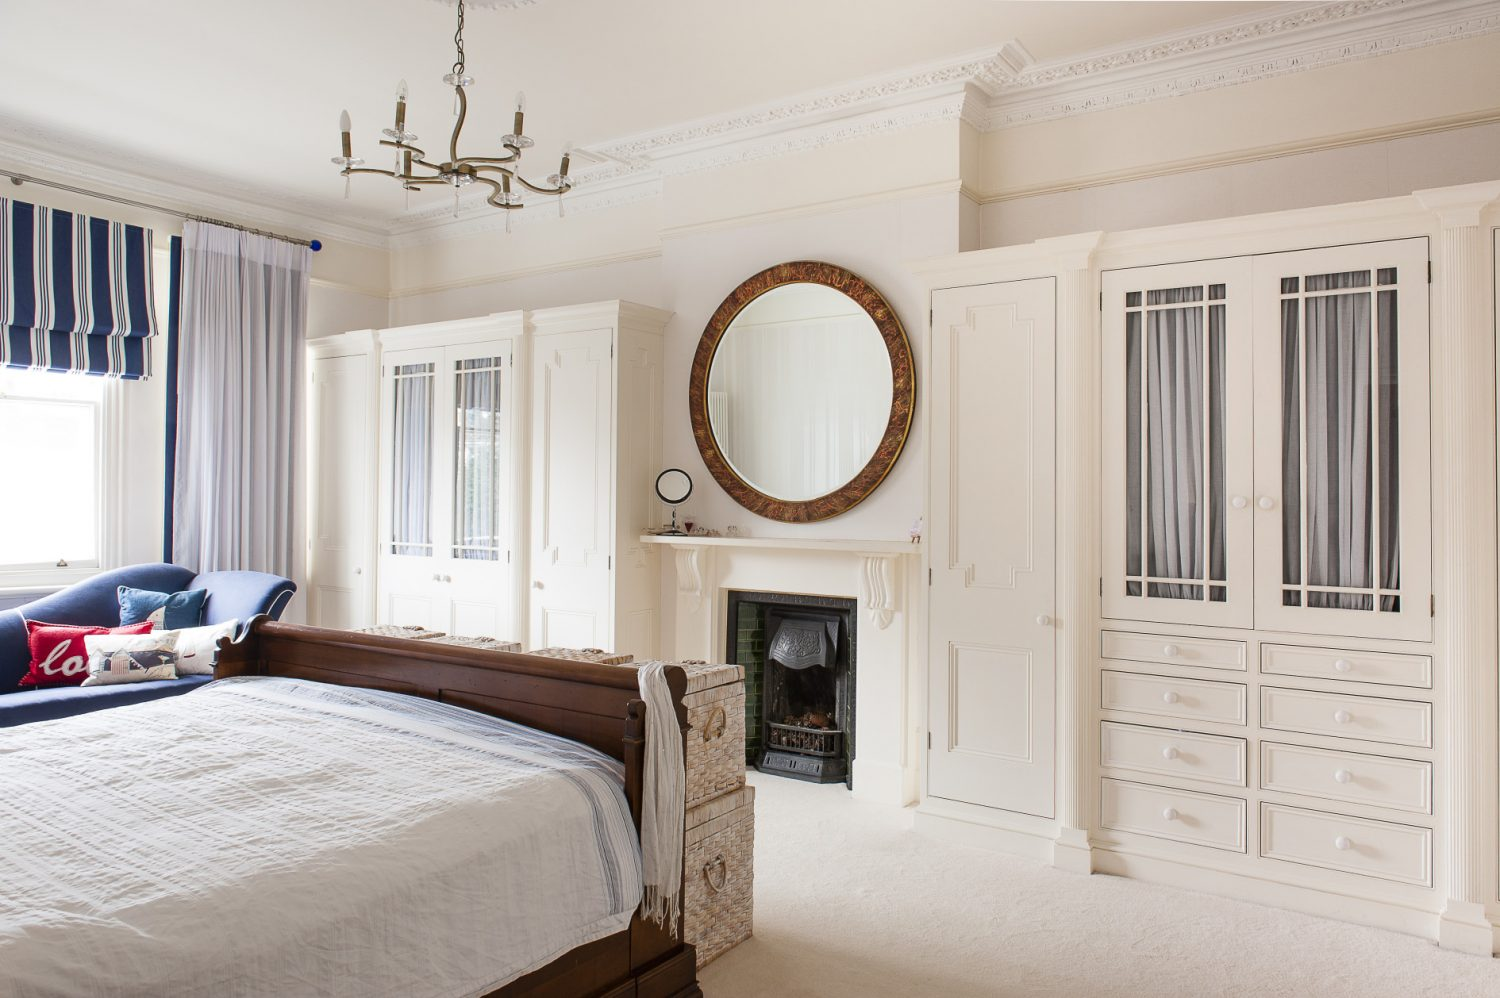 The master bedroom and en suite are cool, calm spaces punctuated by nautical stripes and the metallic flash of handmade mirrors by Joseph McCarthy